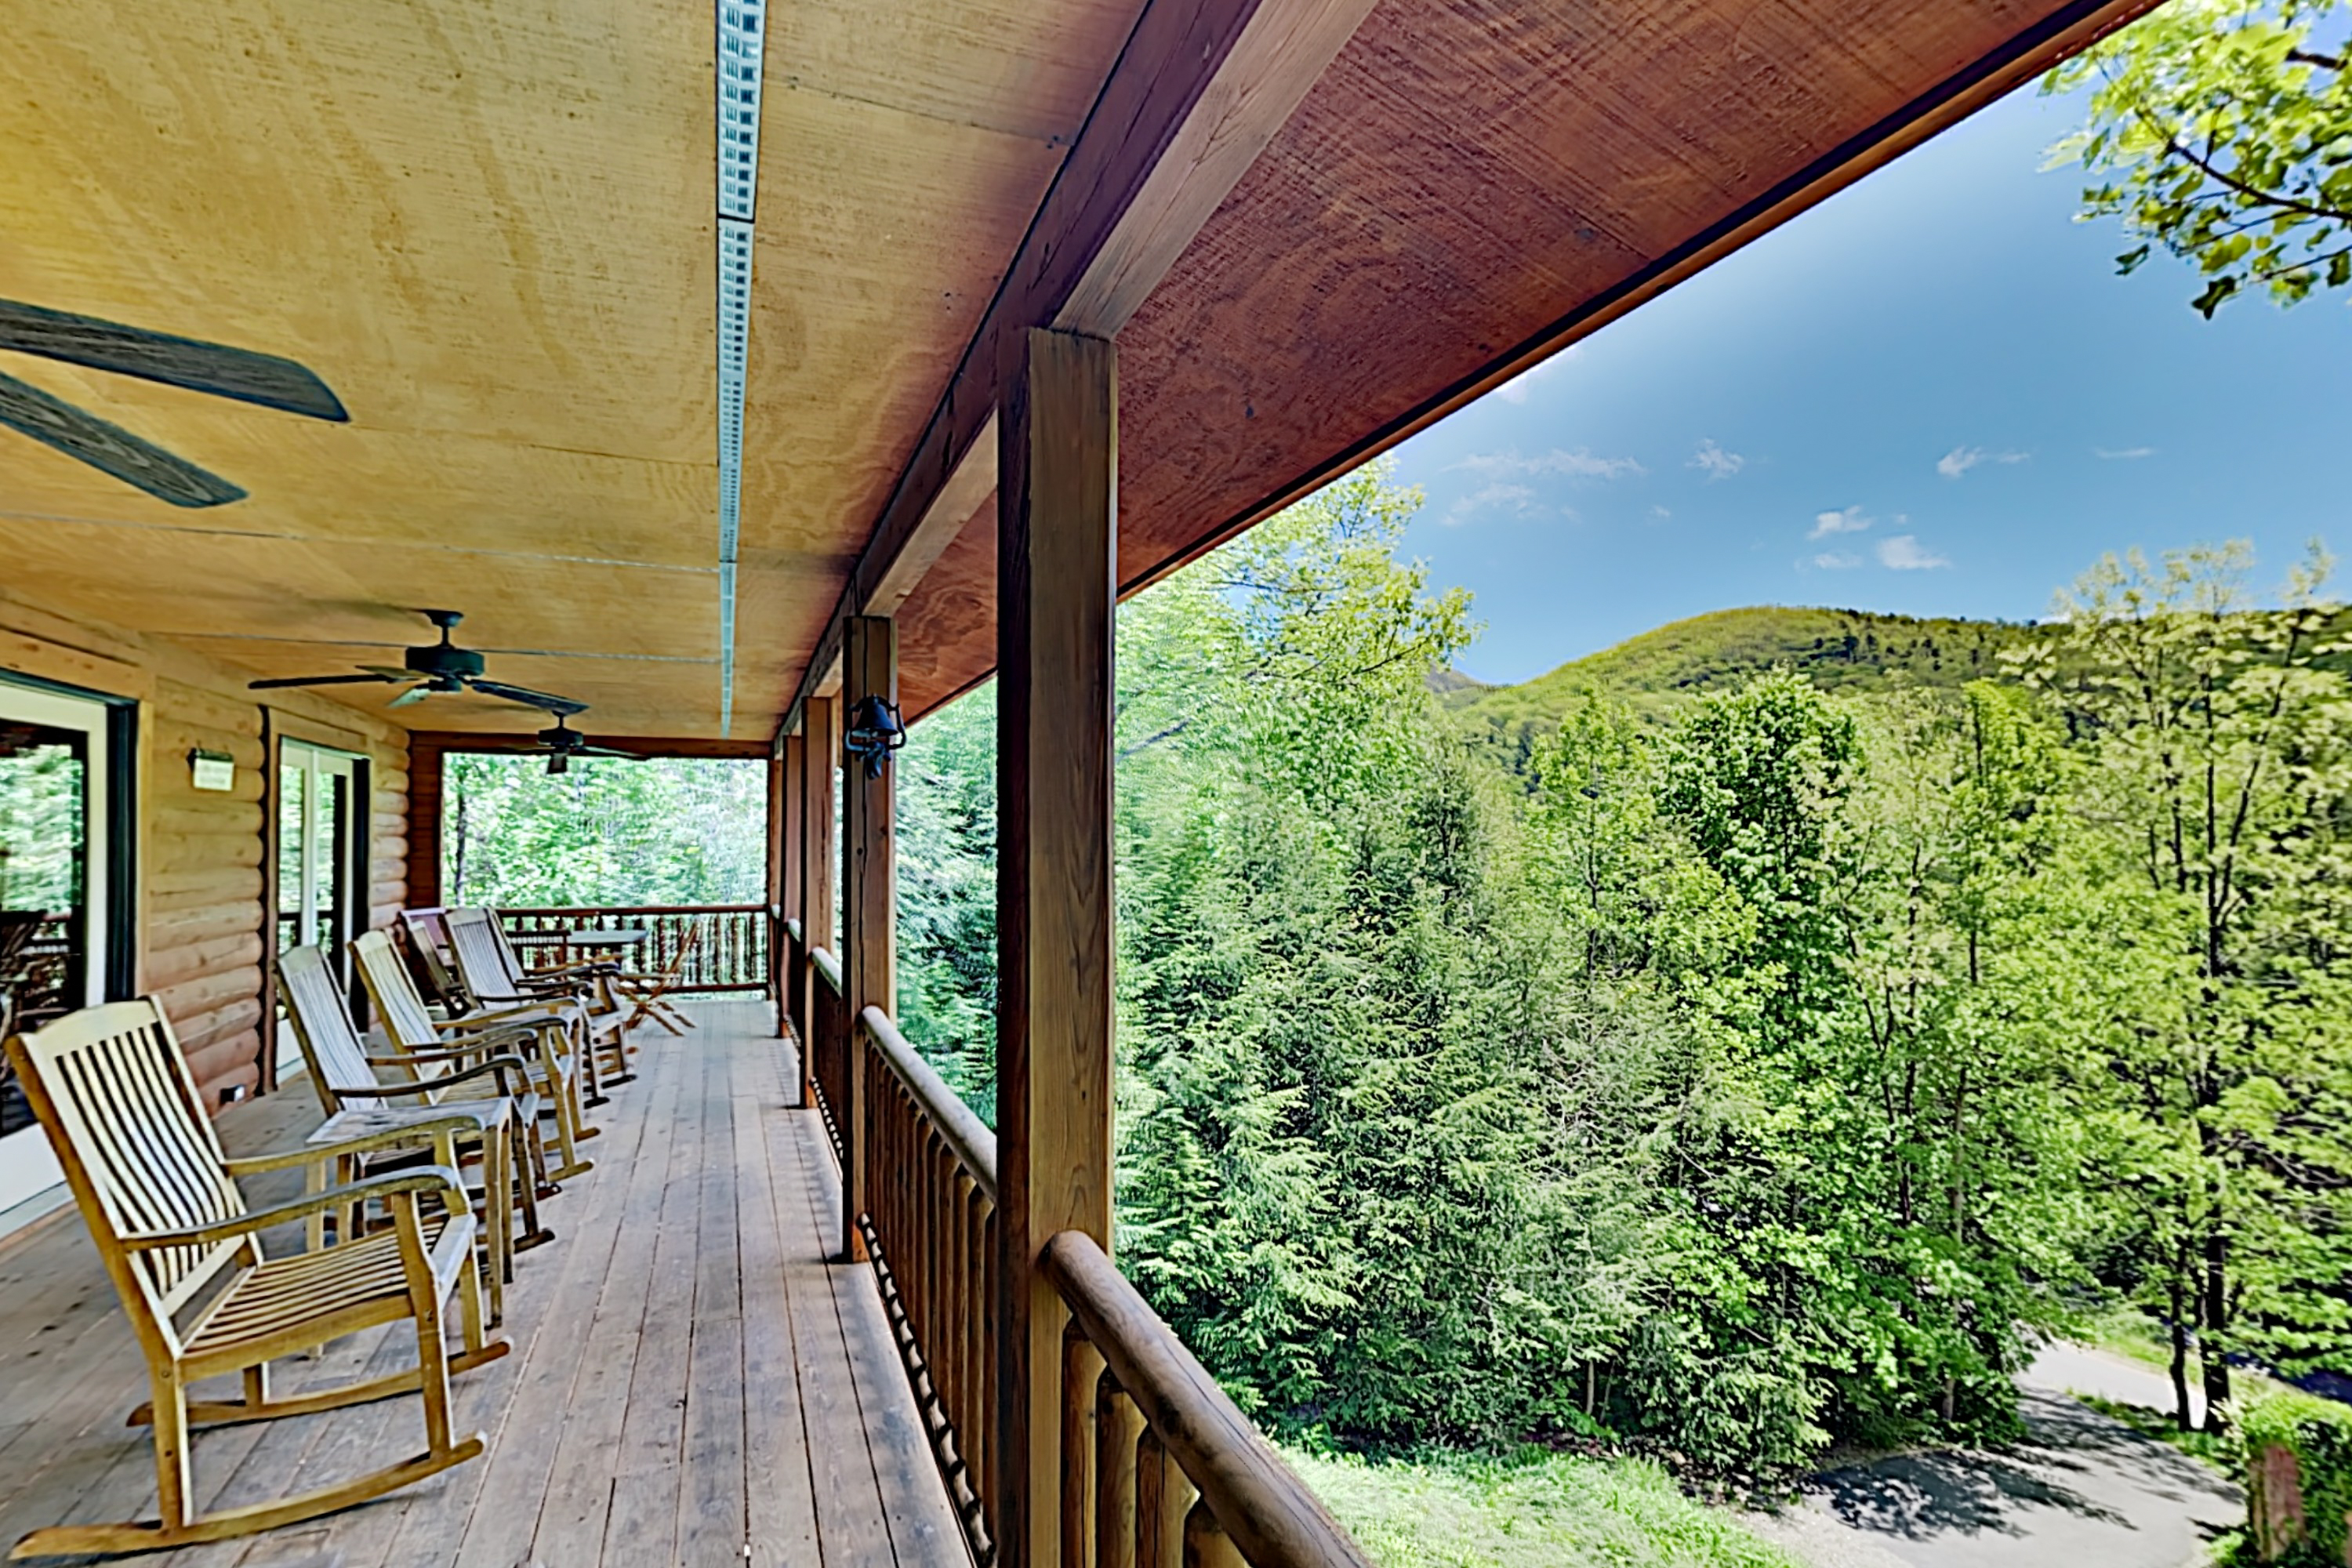 Montreat NC Vacation Rental Welcome to Montreat!